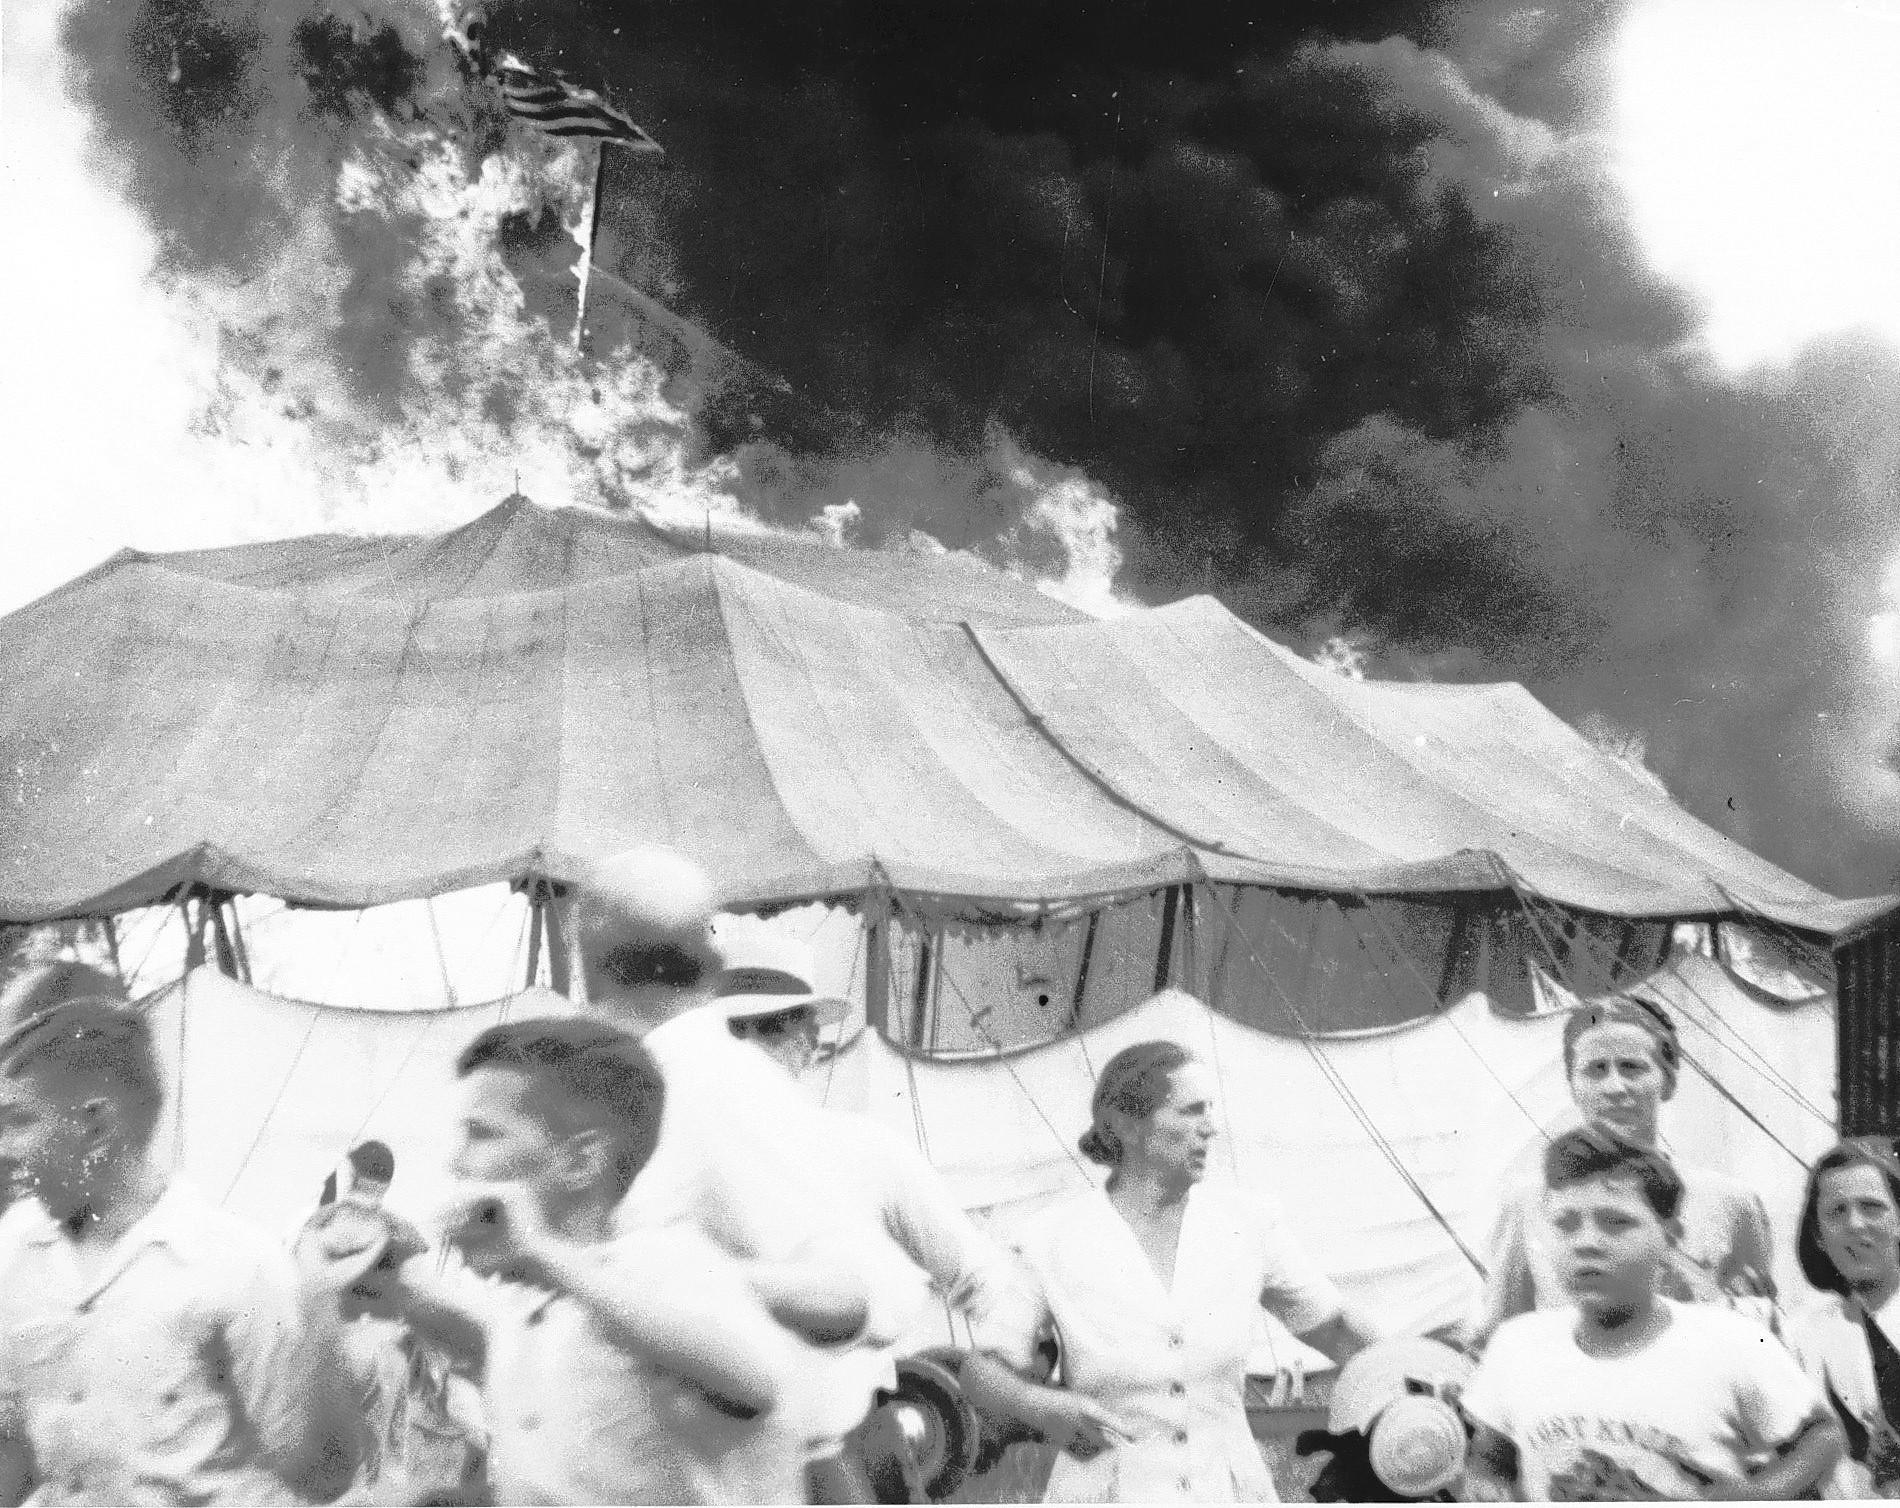 Terrified circus goers flee the raging fire on the afternoon of July 6, 1944.